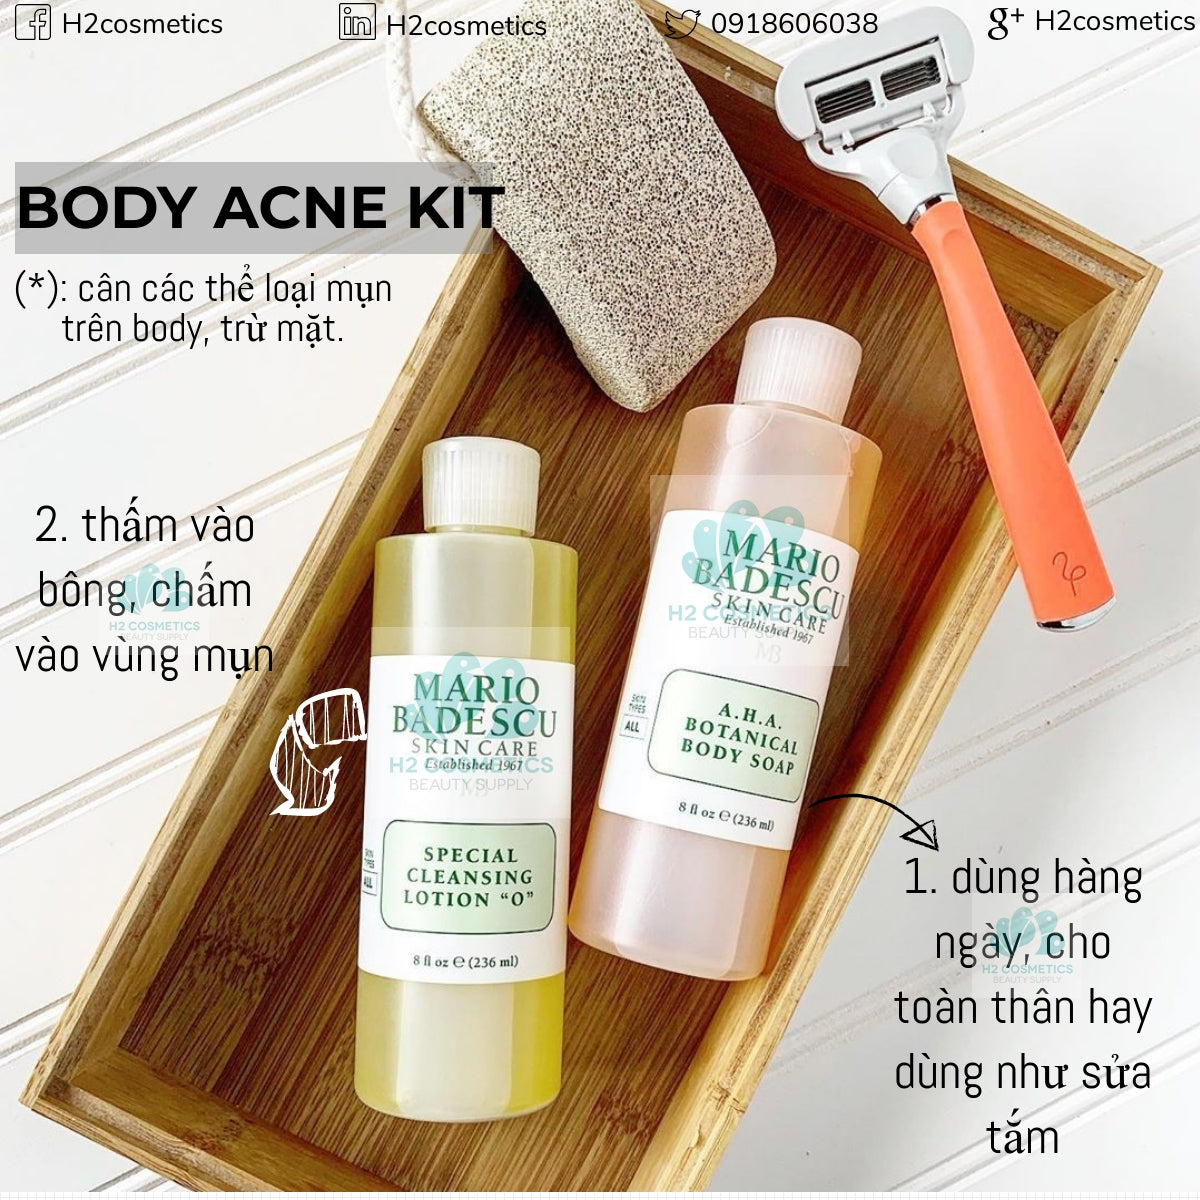 Mario Badescu - Body Acne Kit